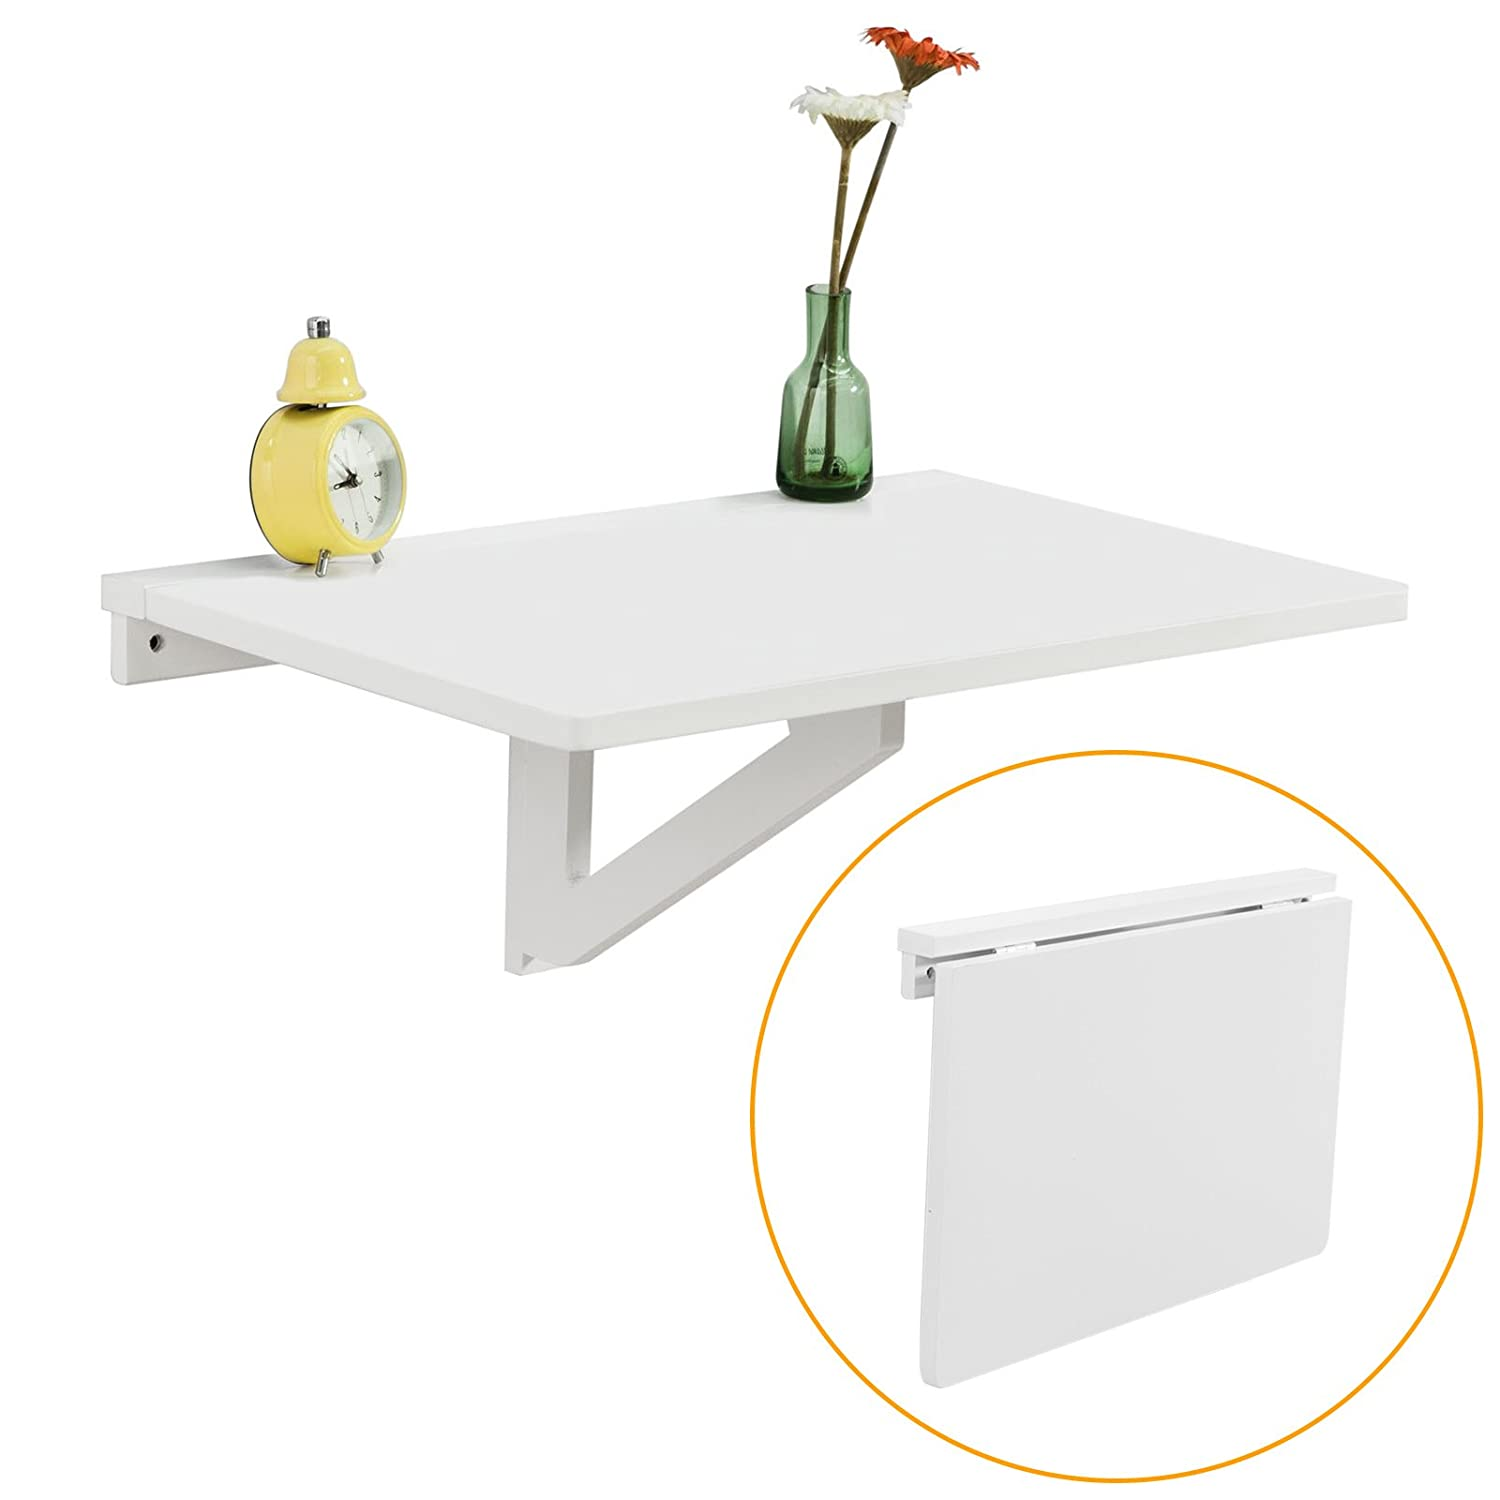 SoBuyR Wall Mounted Drop Leaf Table Folding Kitchen Dining Desk